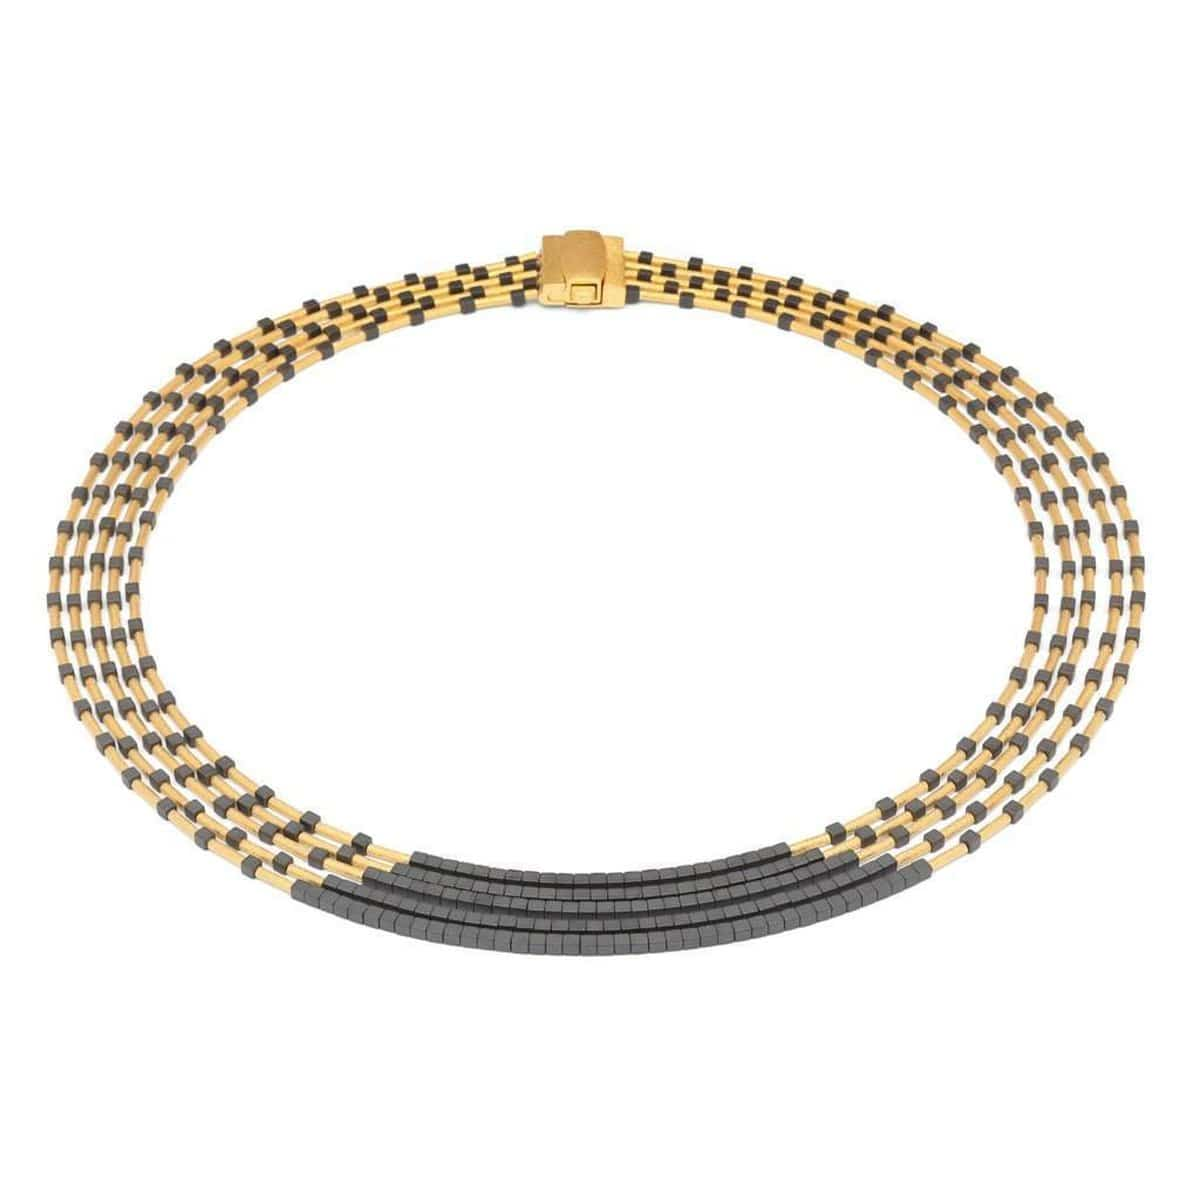 Nofrete Hematite Necklace - 84019276